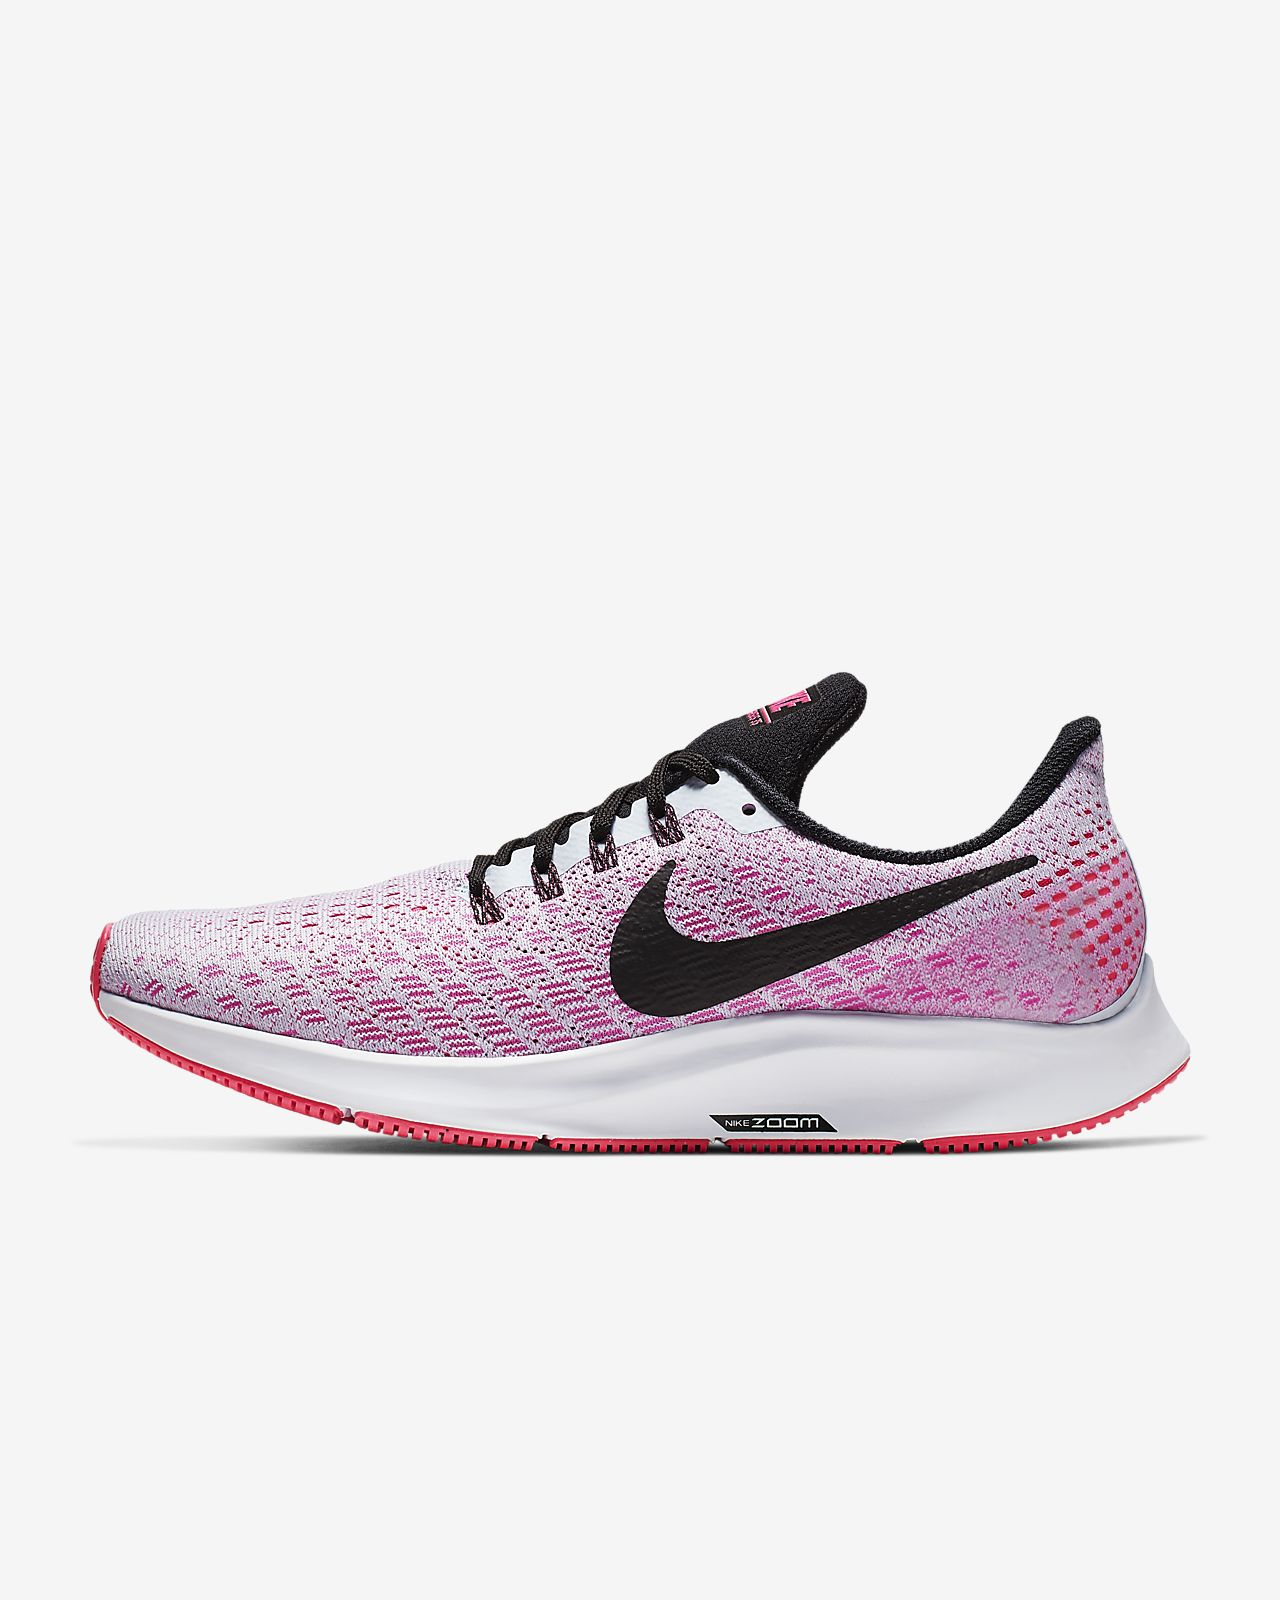 376642e18ff Nike Air Zoom Pegasus 35 Women s Running Shoe. Nike.com